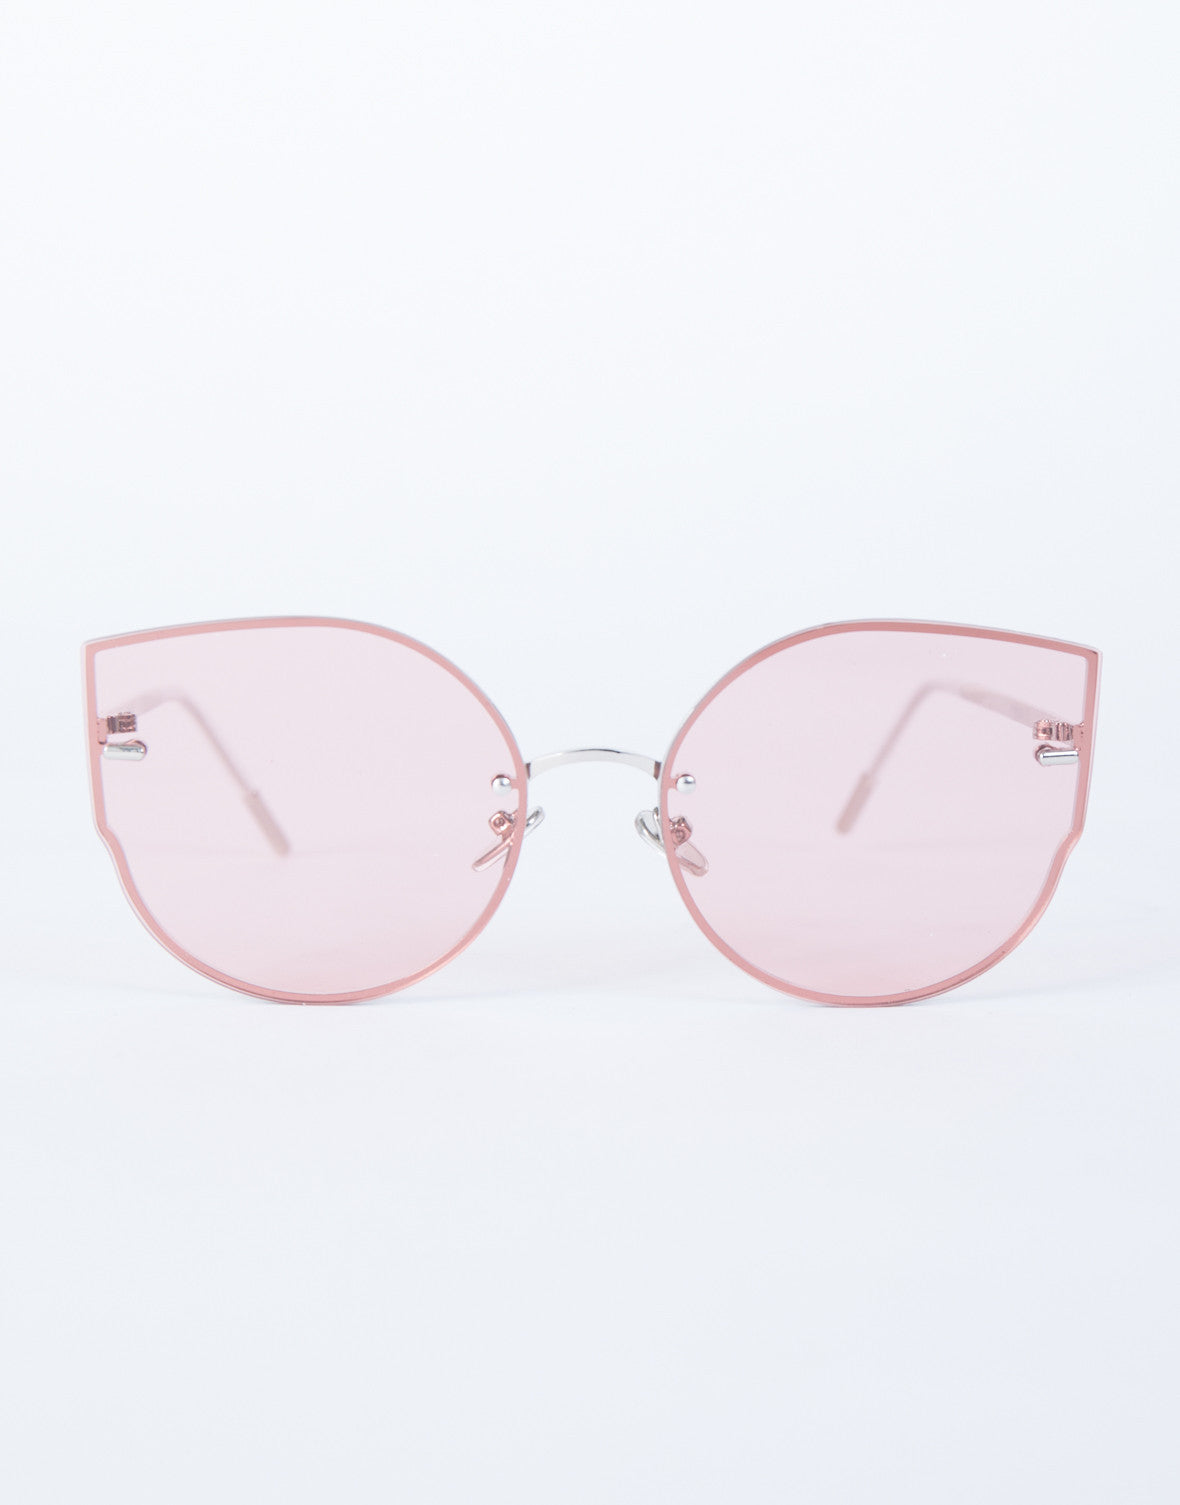 Pink Summer Fun Sunnies - Front View